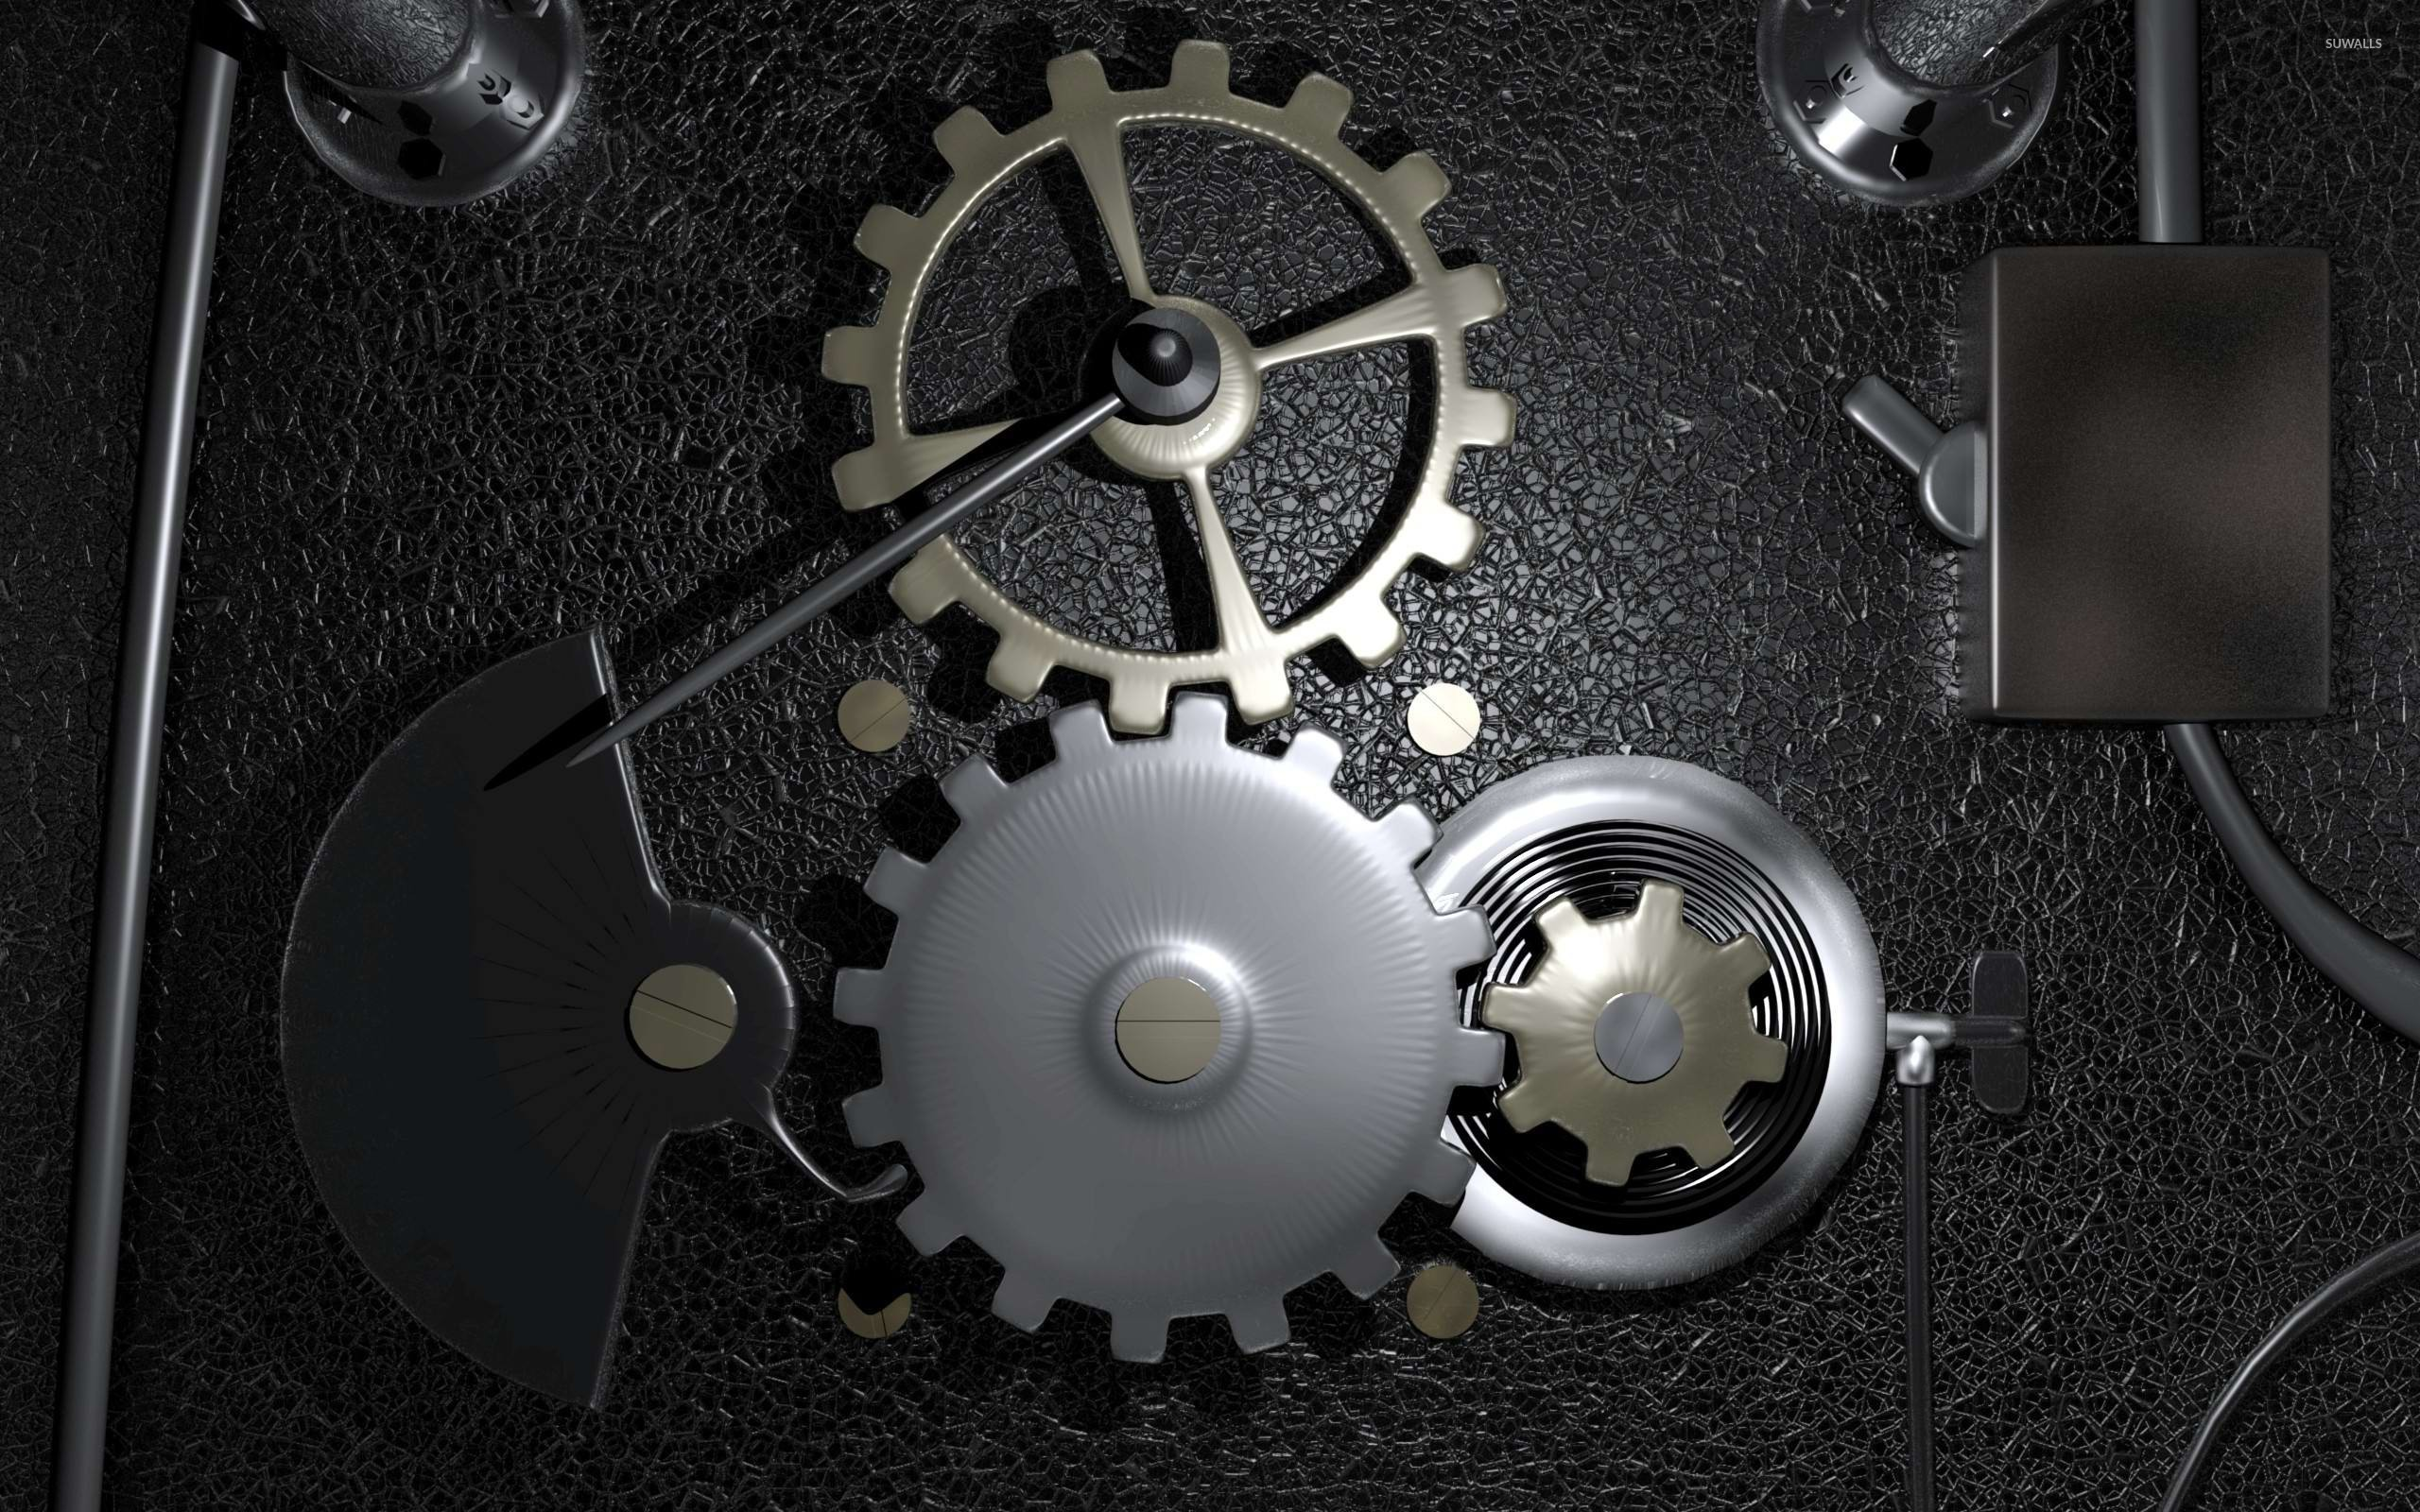 Civil Engineering Quotes Wallpapers Gears In A Machine Wallpaper Digital Art Wallpapers 23886